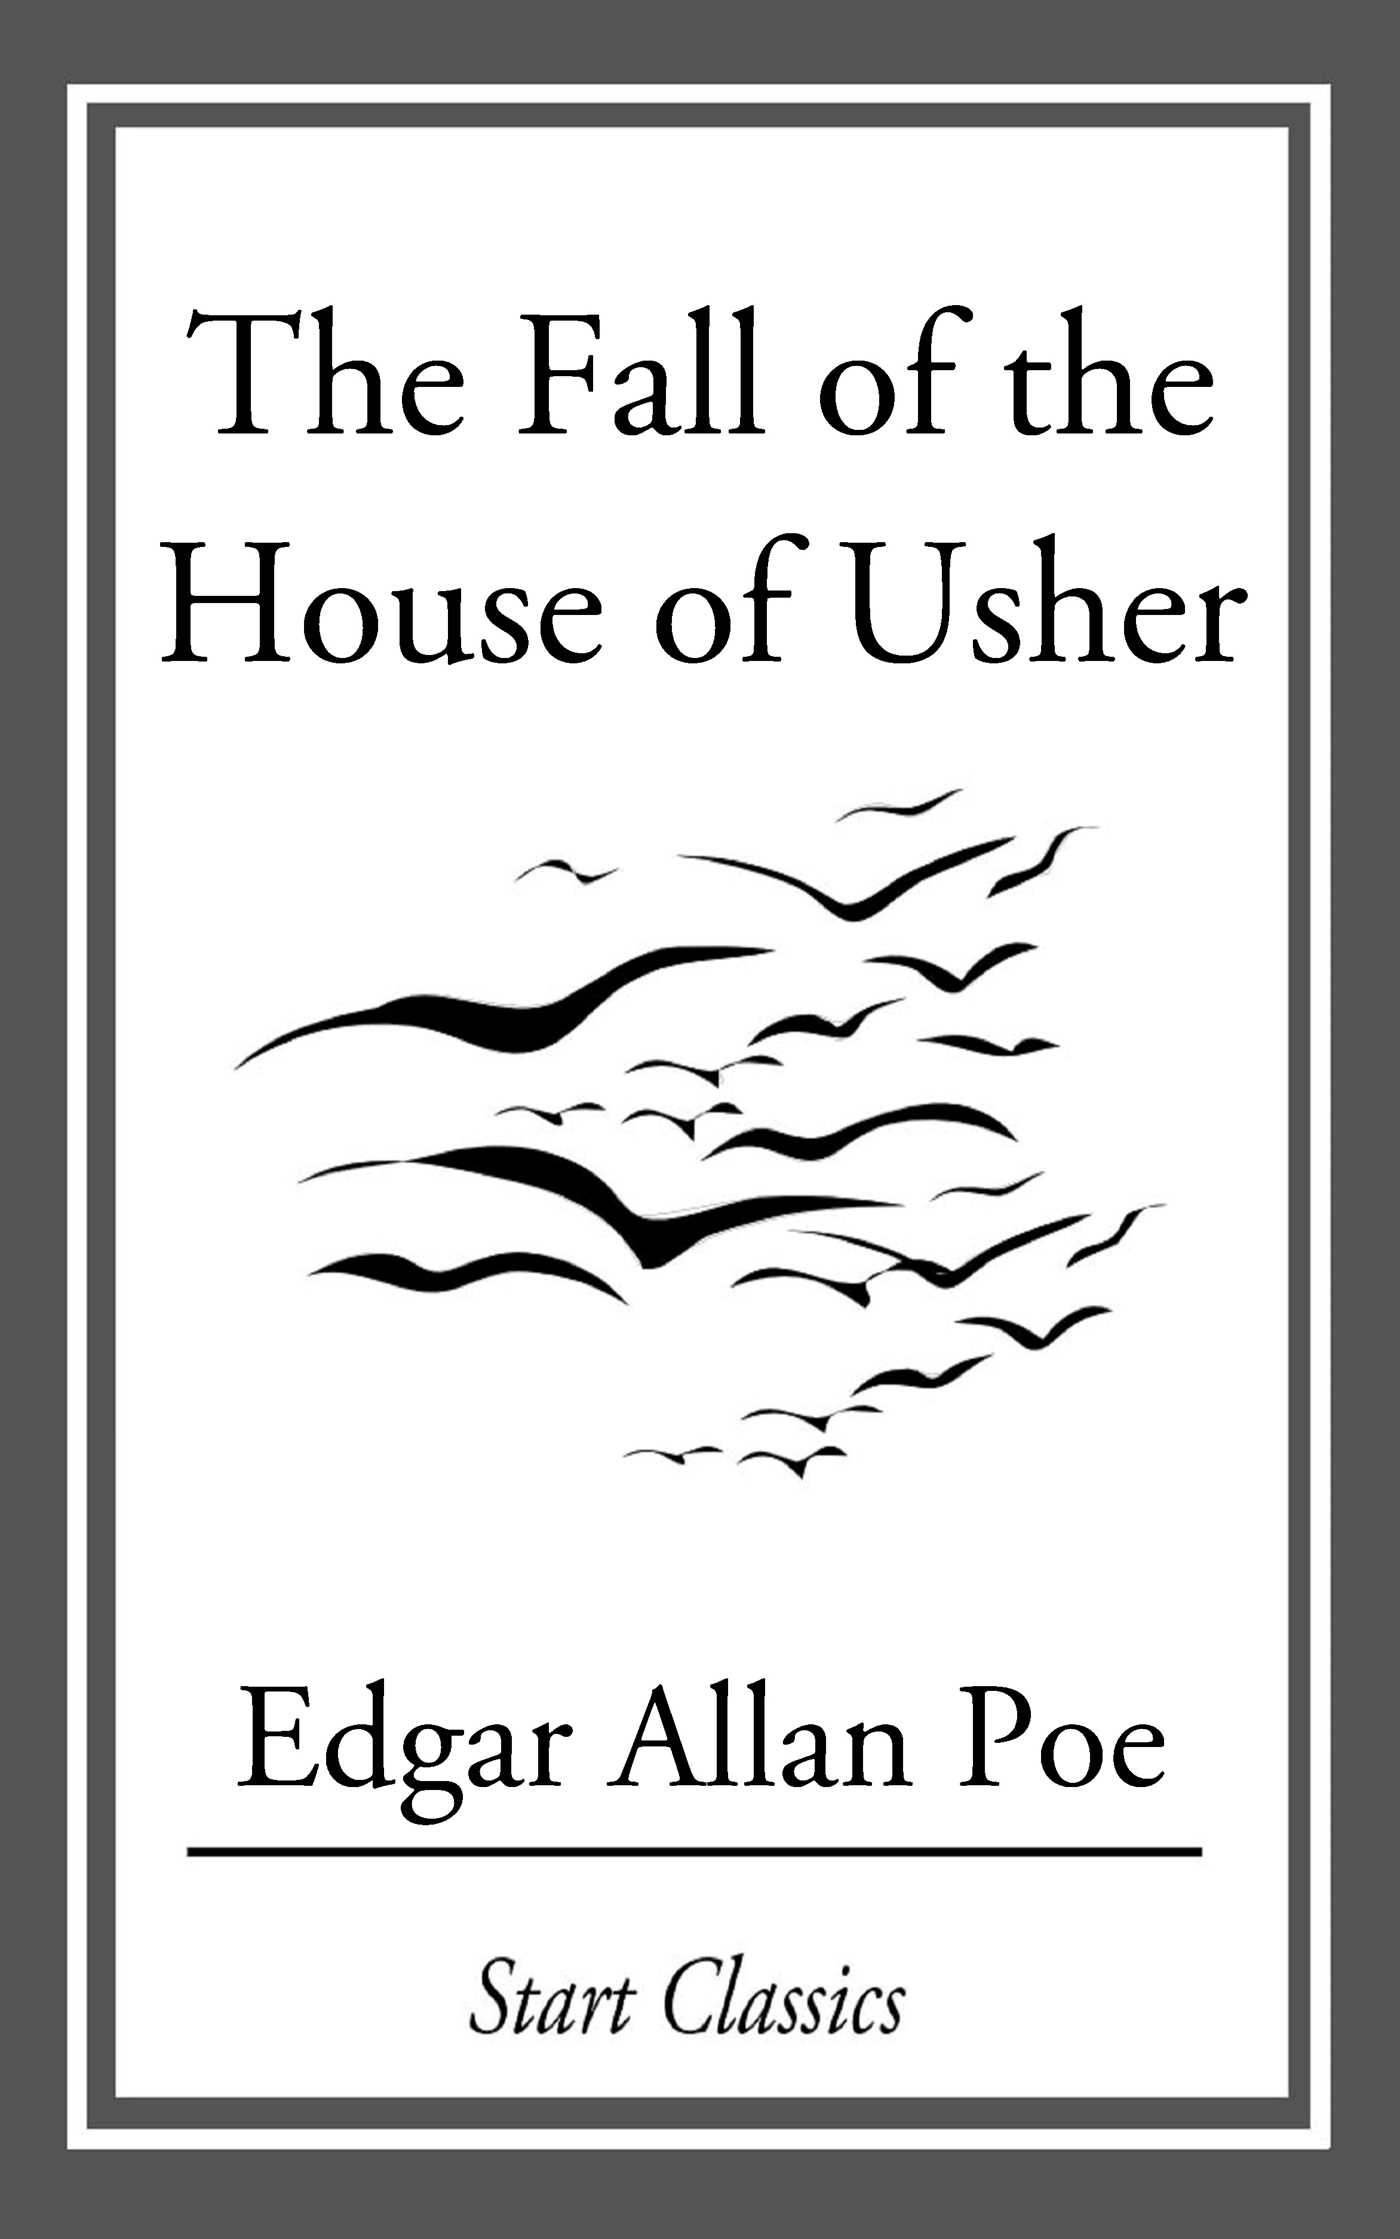 characterization and imagery in the fall of the house of usher by edgar allan poe The fall of the house of usher is acclaimed as one of edgar allan poe's greatest works poe uses symbolism and analogies in both characters and setting to tell this gothic tale of death and downfall he often drew upon memory for the setting of his stories he combines atmosphere and analogy to form the setting which provokes to.